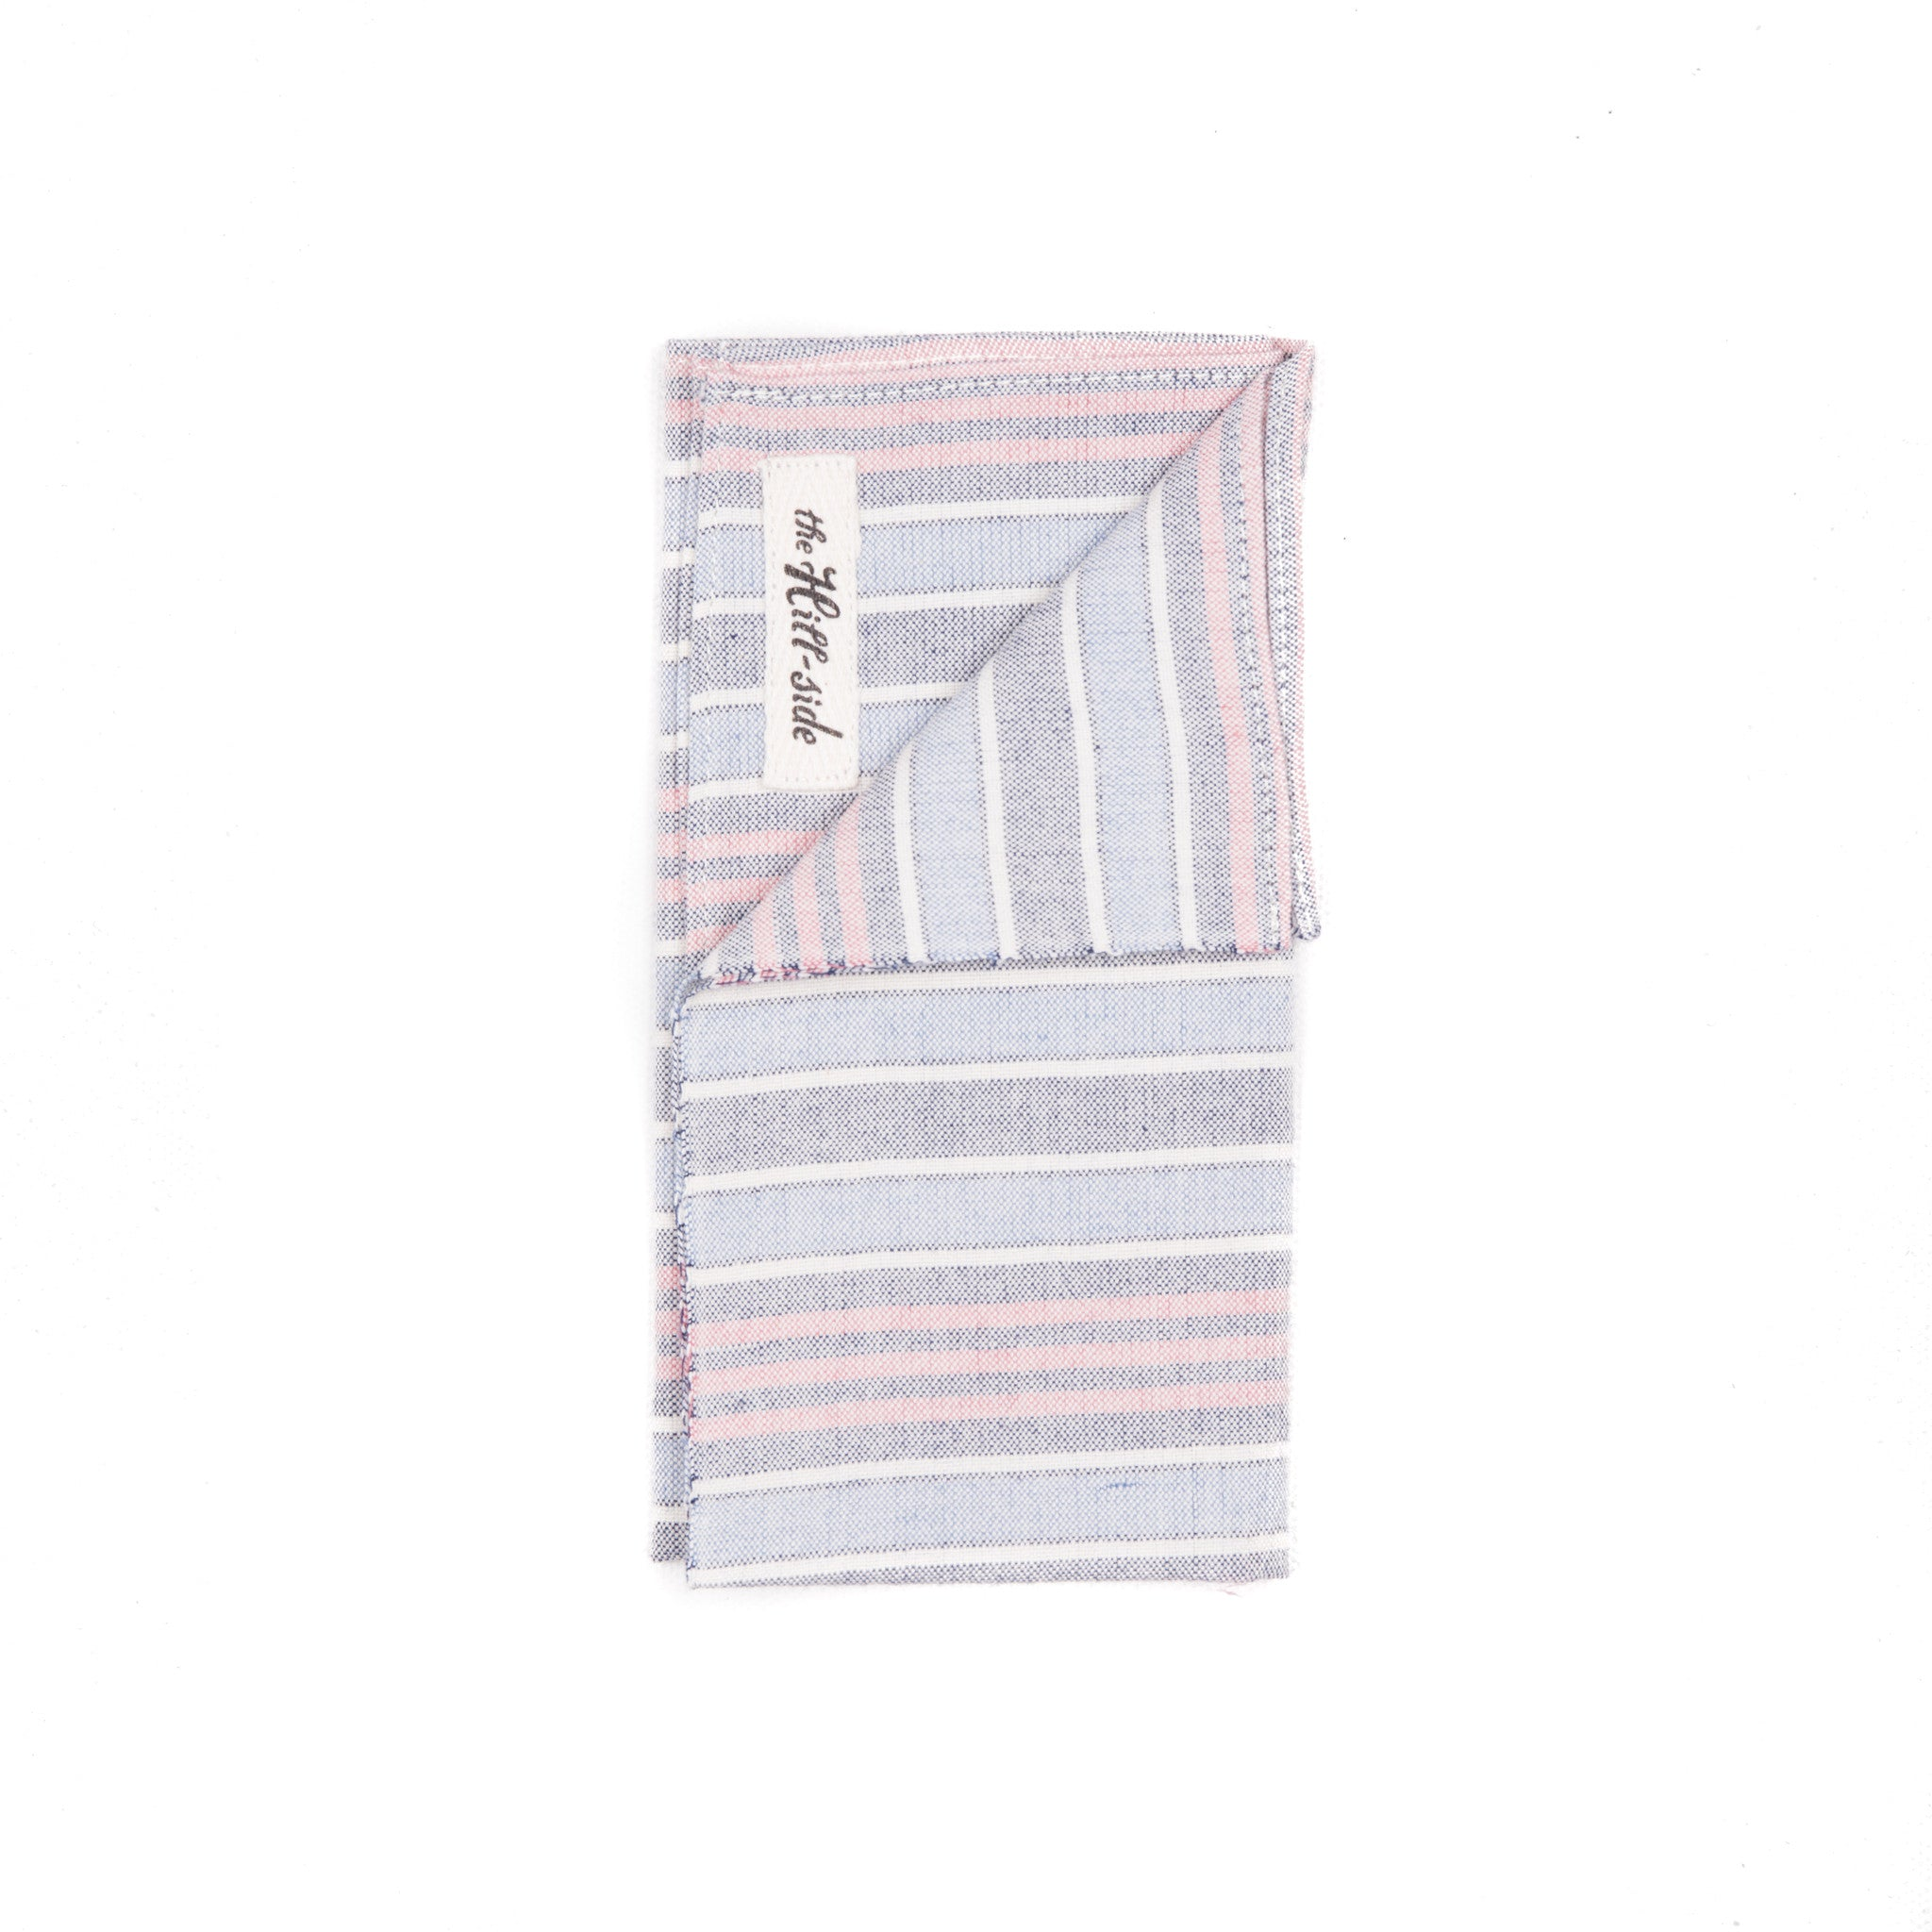 Pocket Square - Antique Japnese Pattern